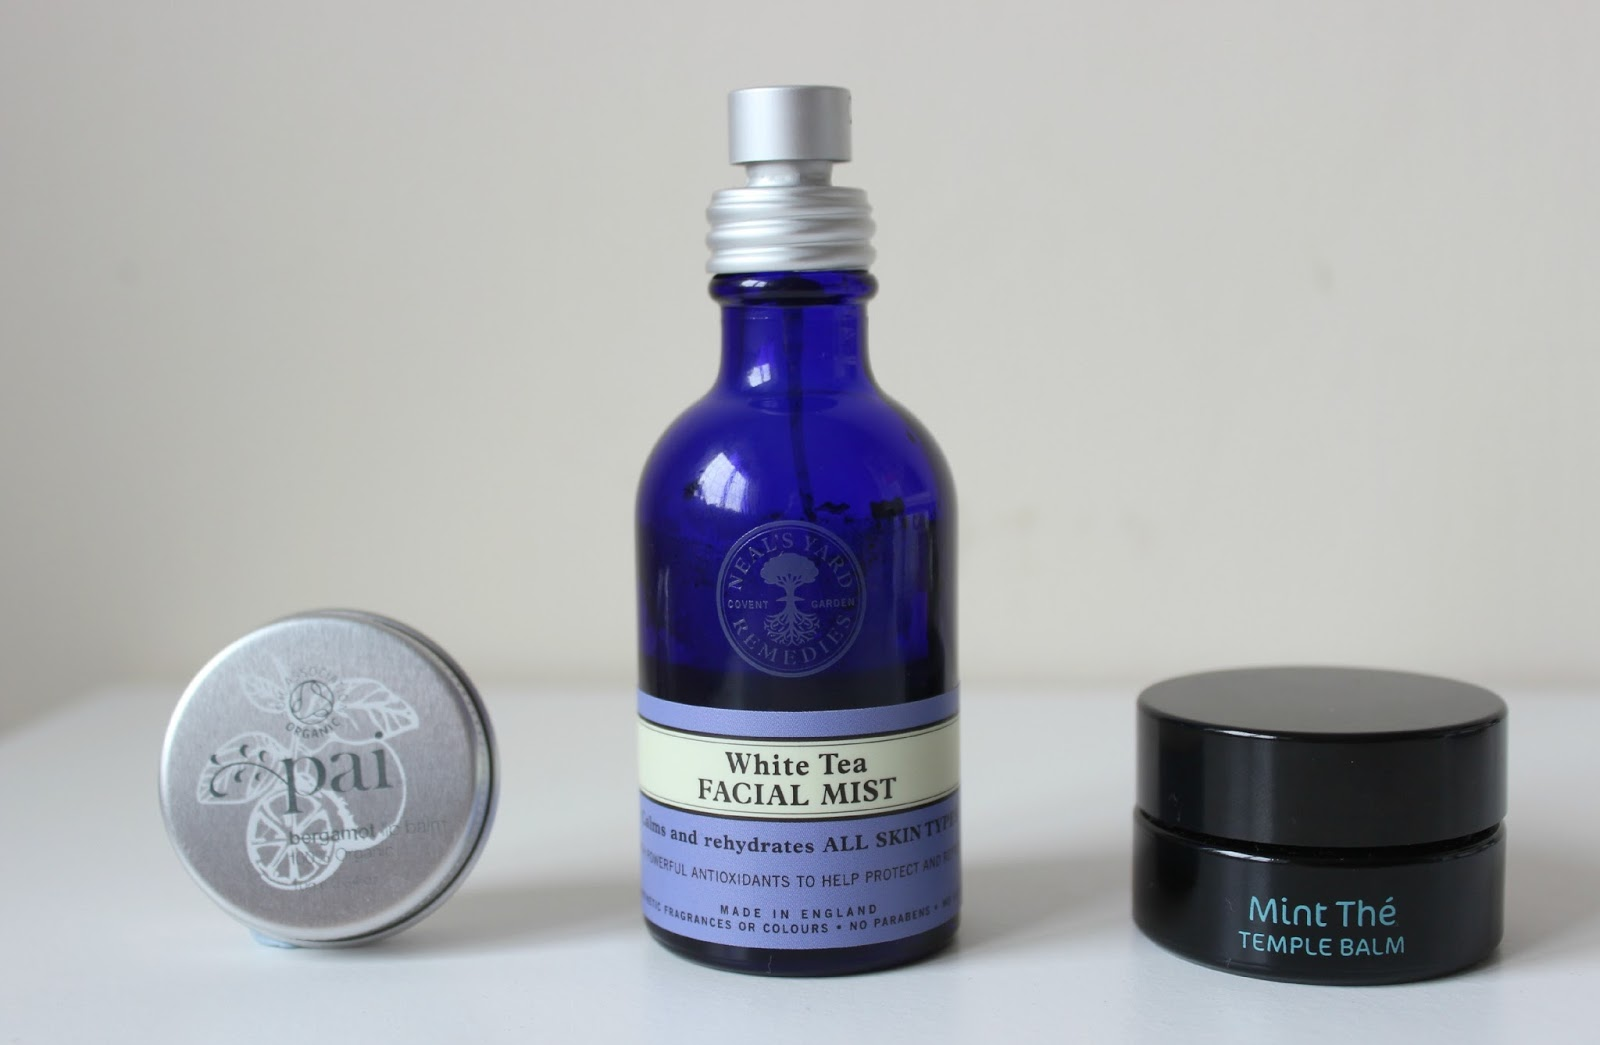 A picture of Pai Skincare Bergamot Lip Balm, Neal's Yard Remedies White Tea Facial Mist and Bodhi & Birch Mint The Temple Balm